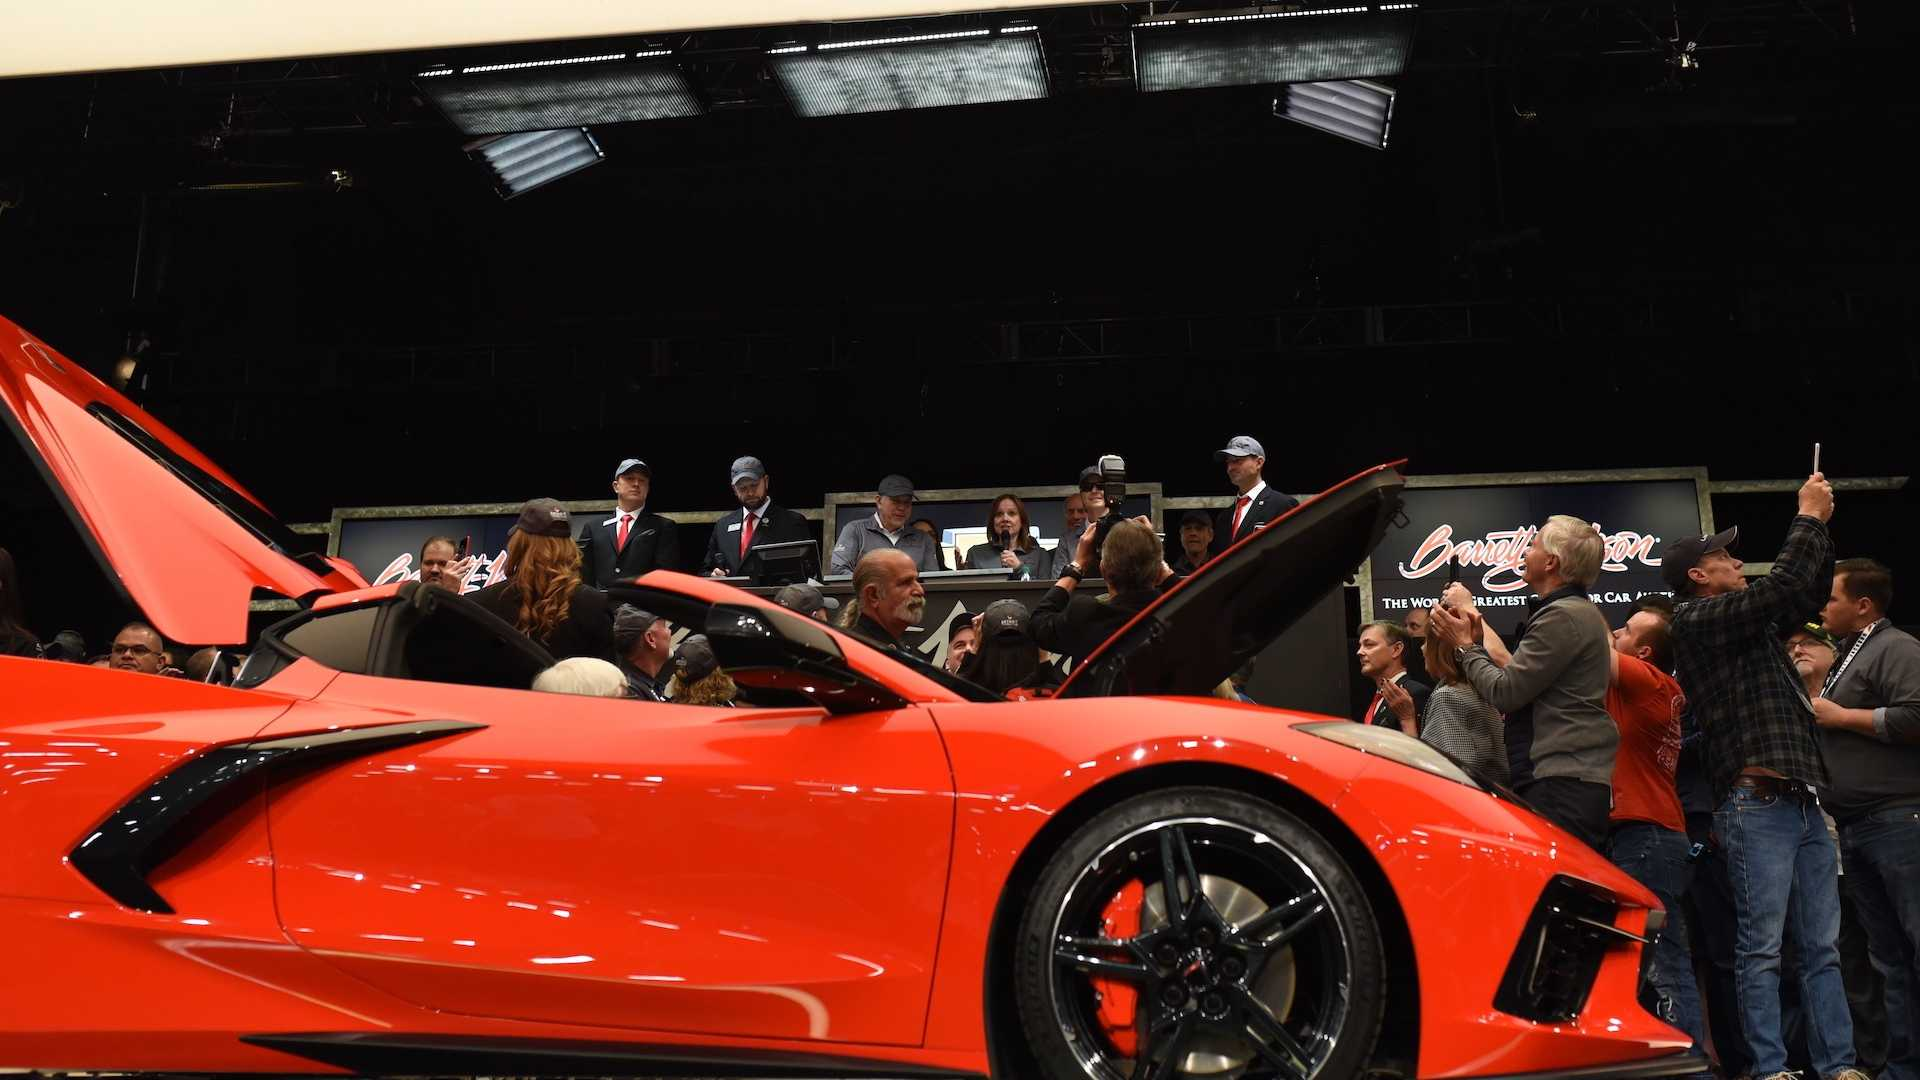 2020_Chevrolet_Corvette_Stingray_VIN_001_Sold_0011